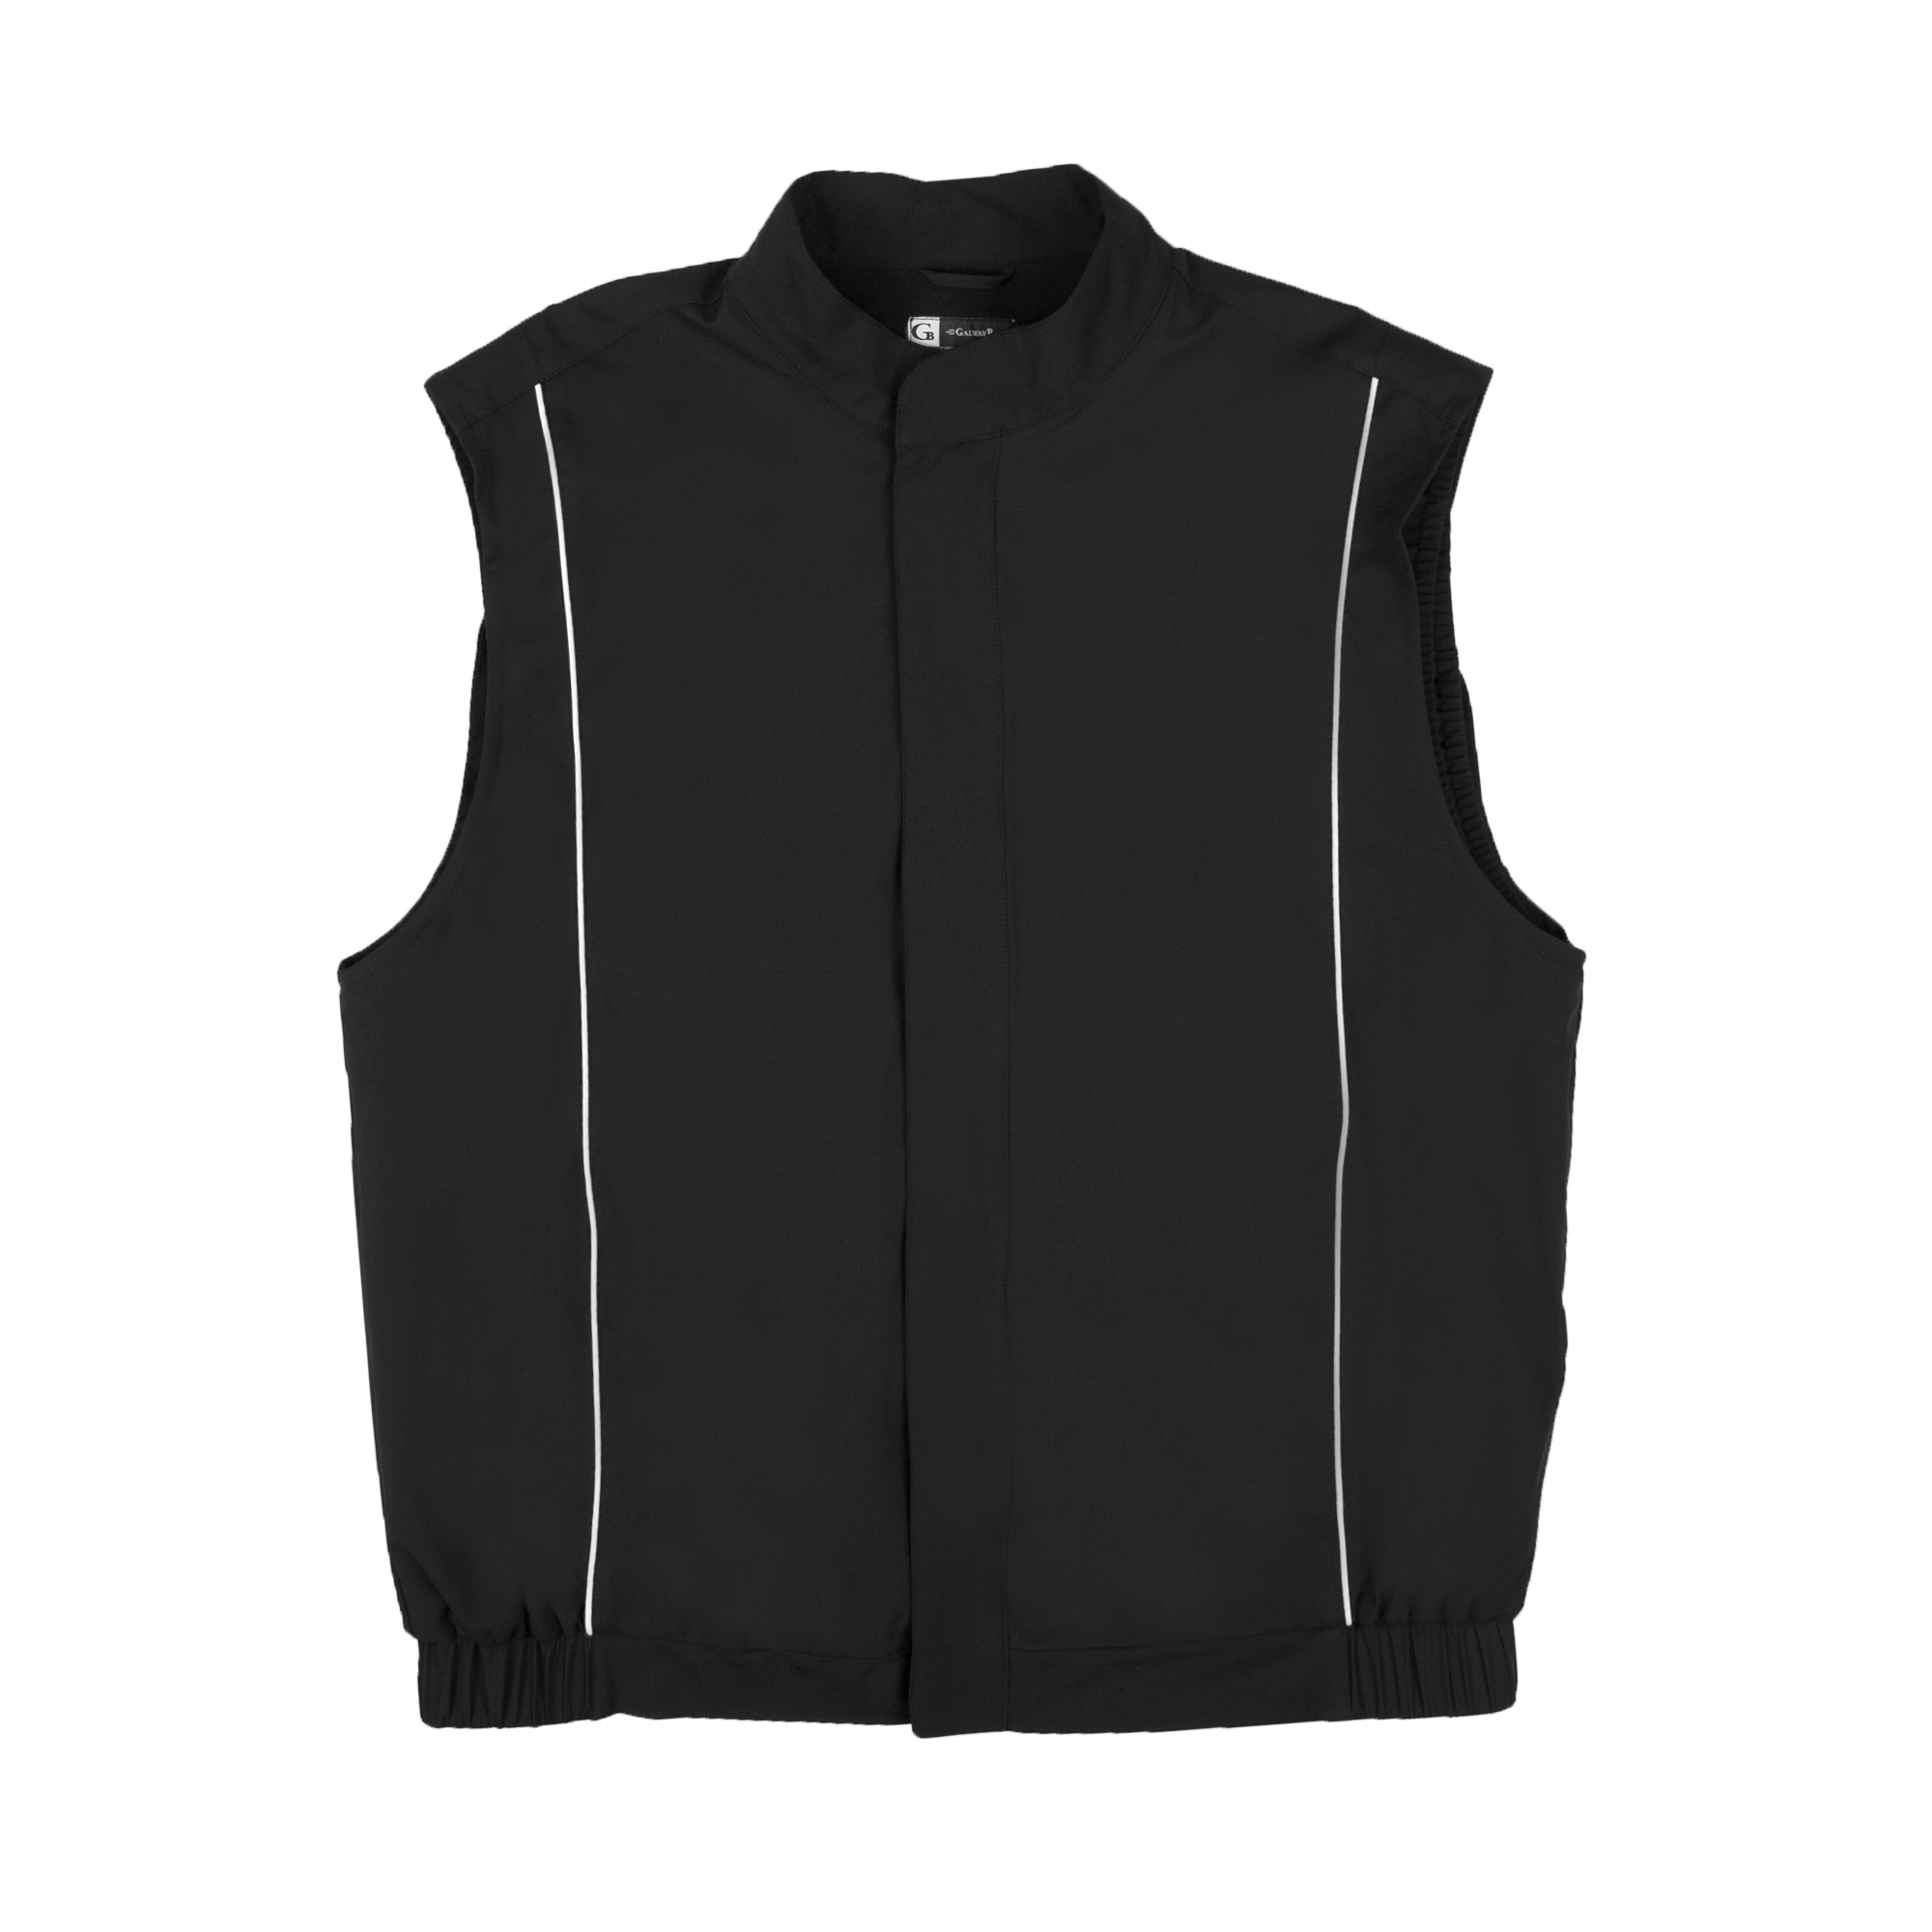 A Galway Bay Apparel vest